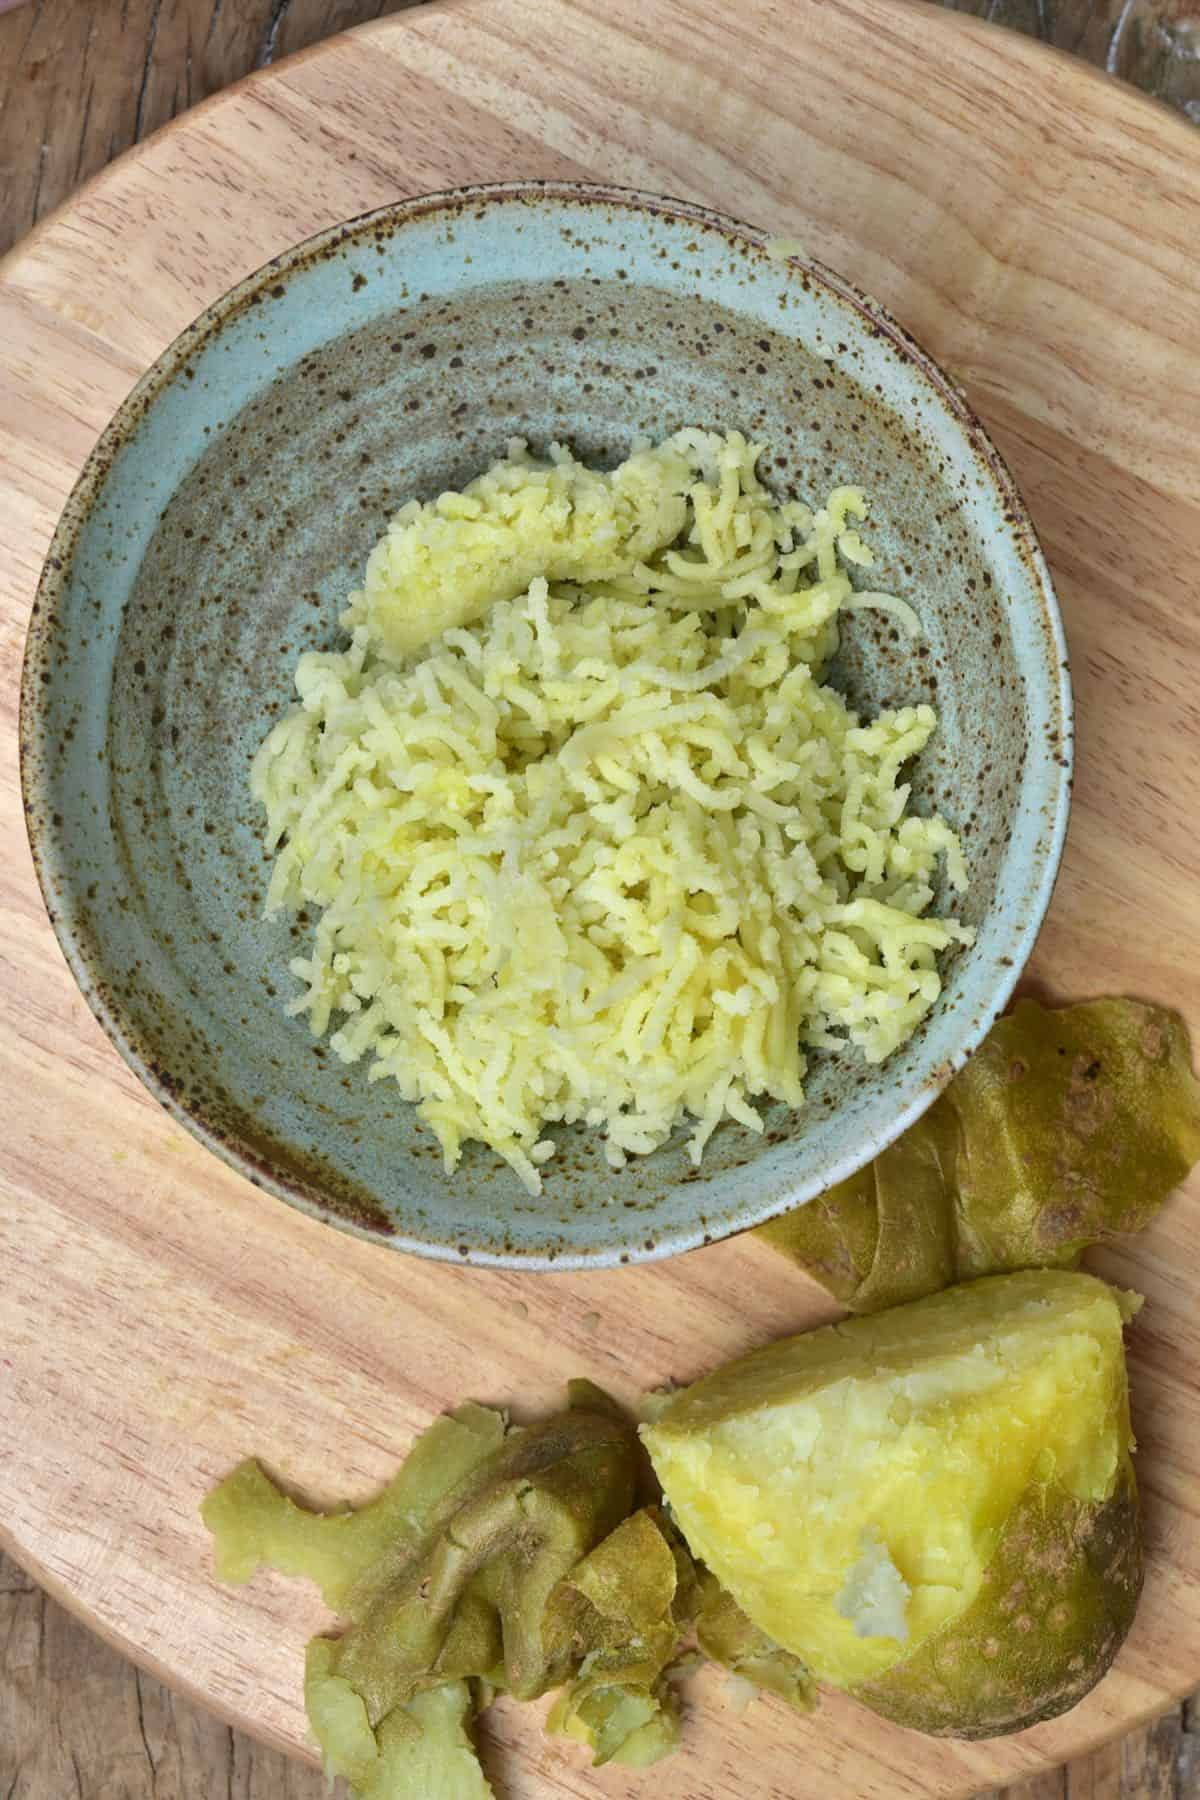 Grated potato in a bowl